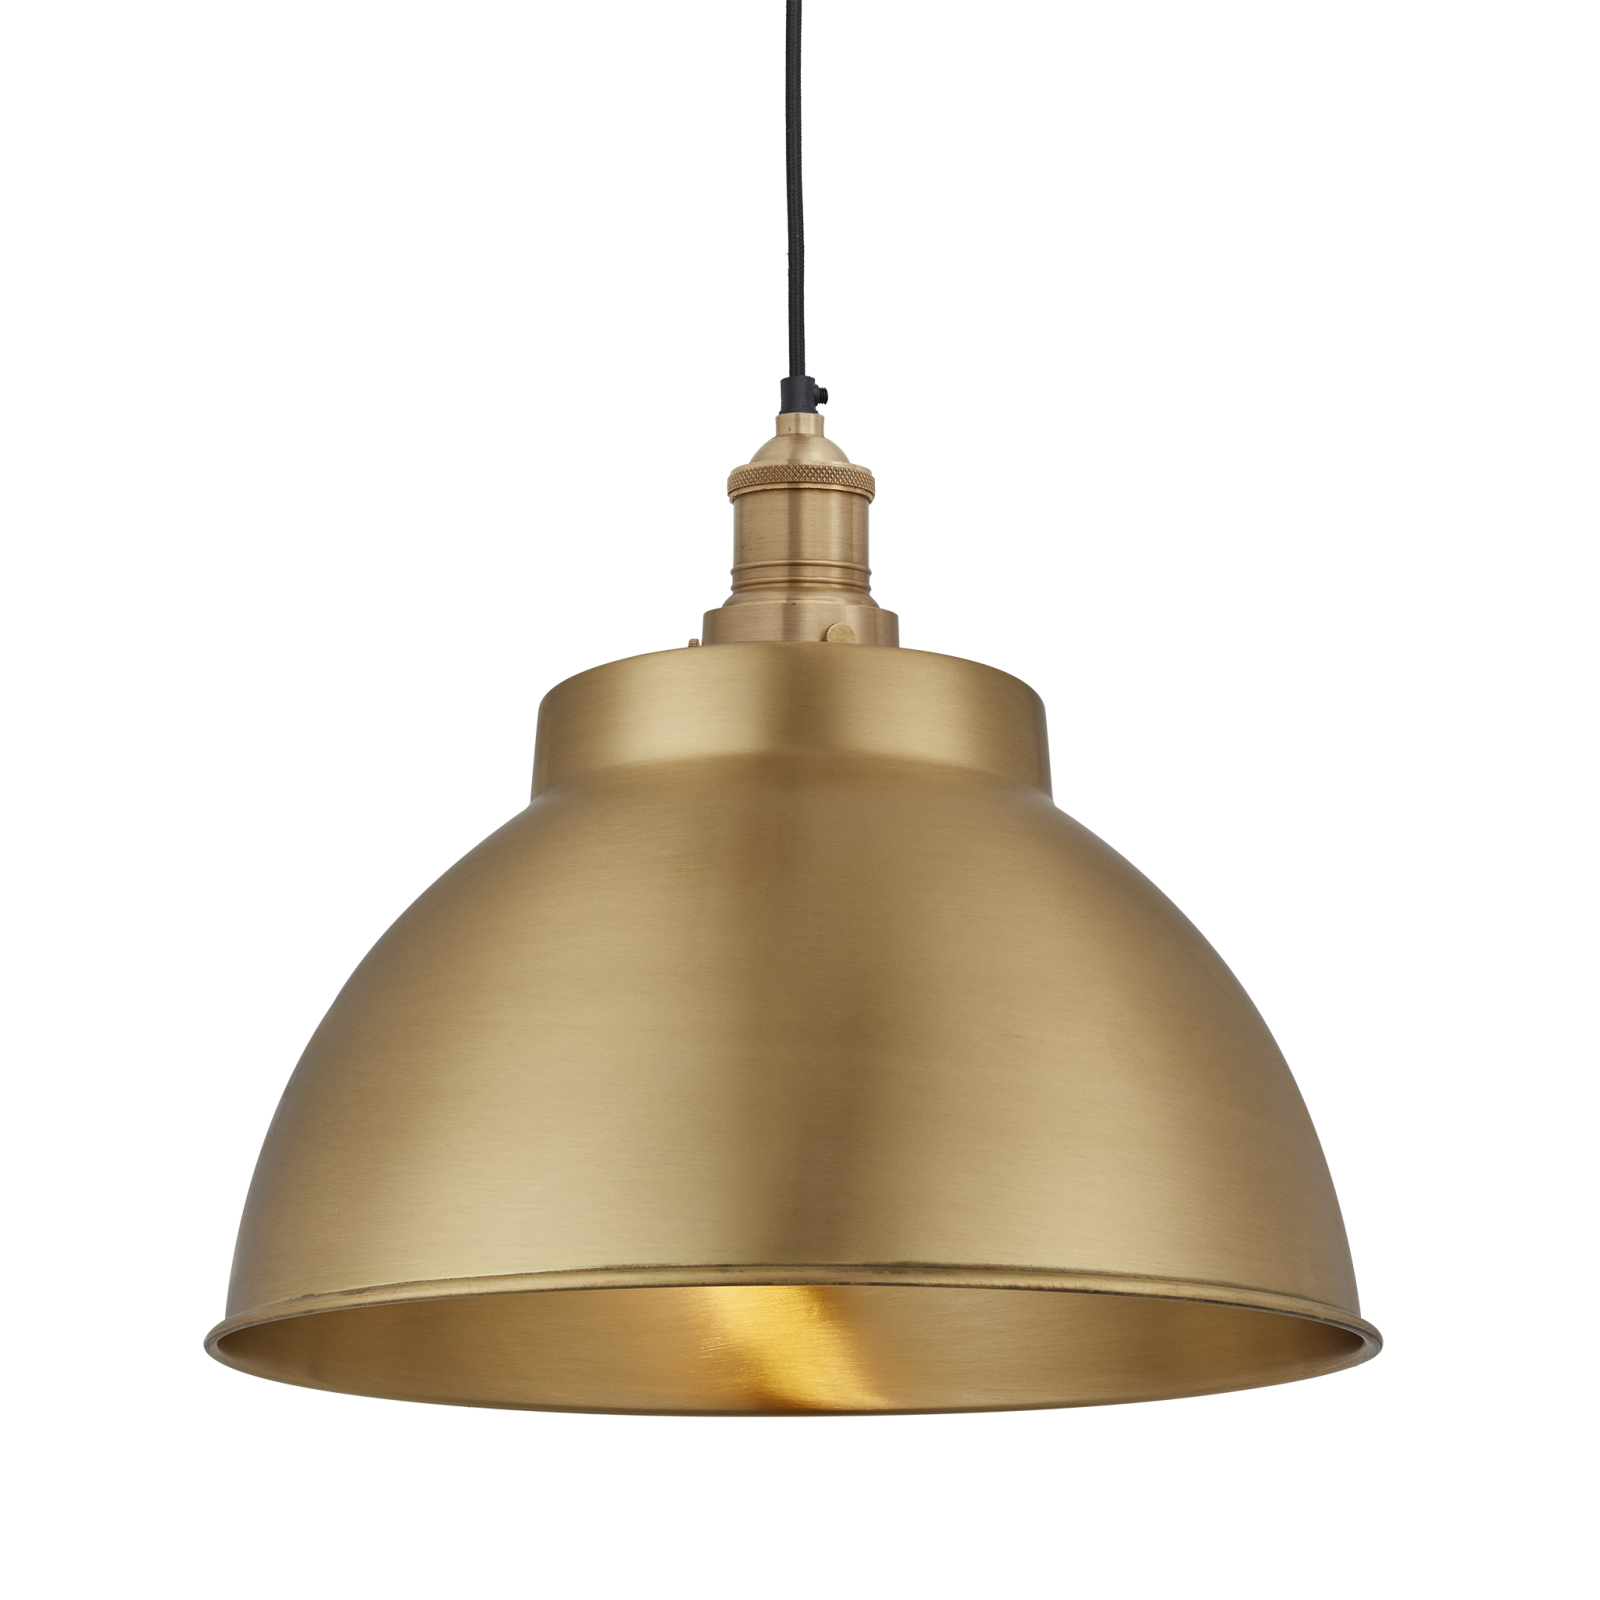 Brooklyn Dome Pendant Light - 13 Inch Brooklyn Dome Pendant - 13 Inch - Brass - Brass Holder